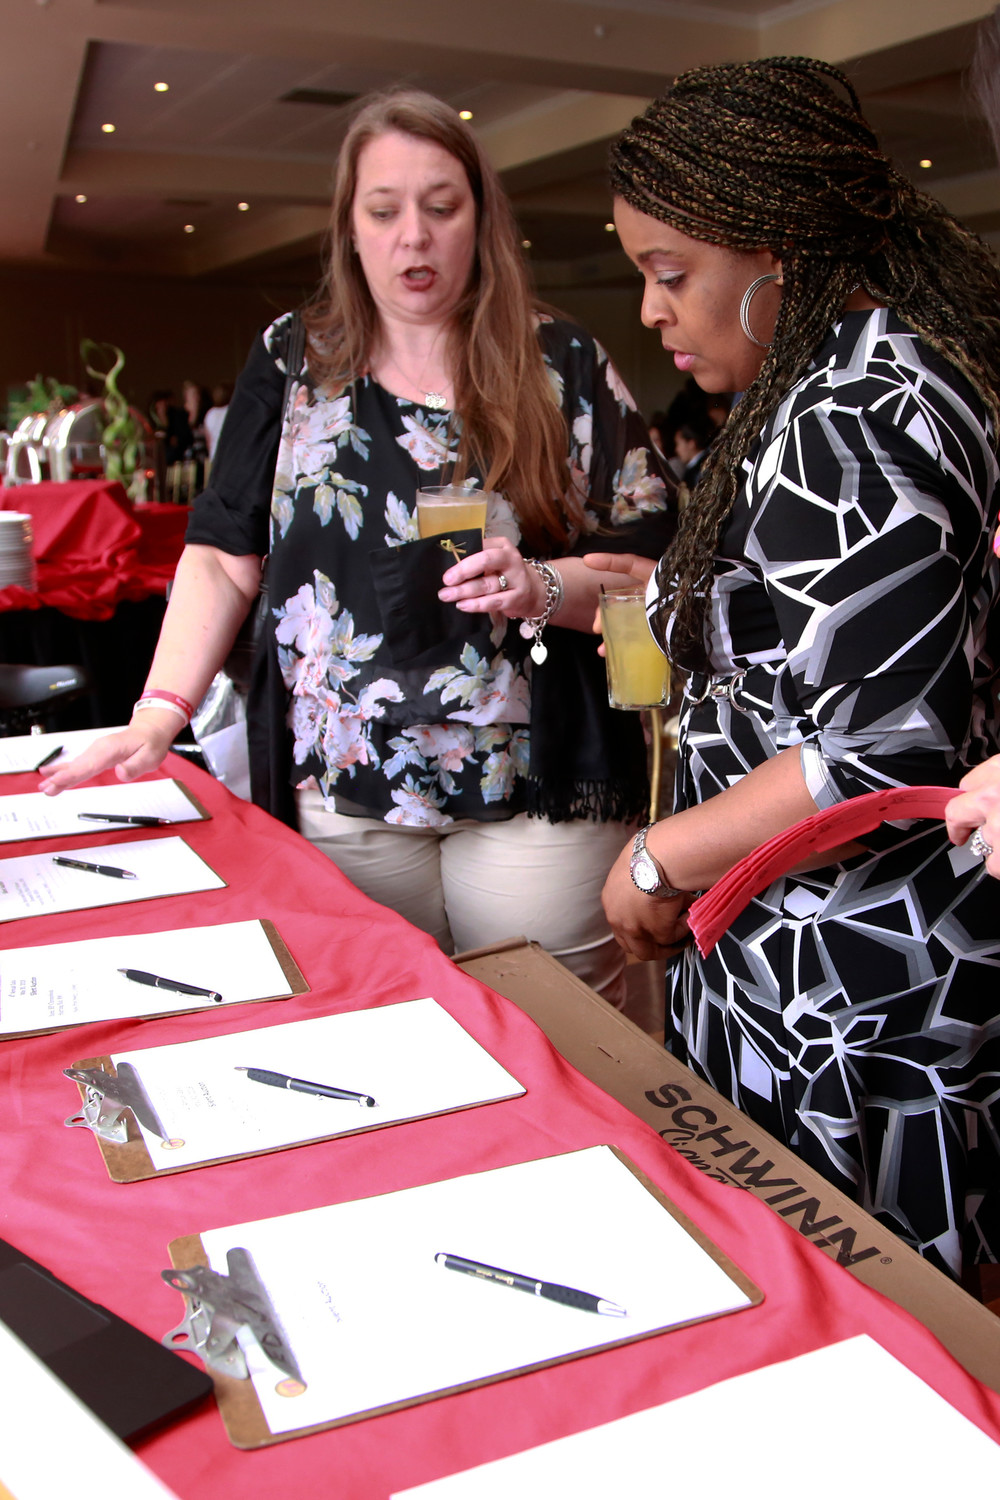 Dawn De La Llera and Nicole Smith consider bidding on silent auctions items.